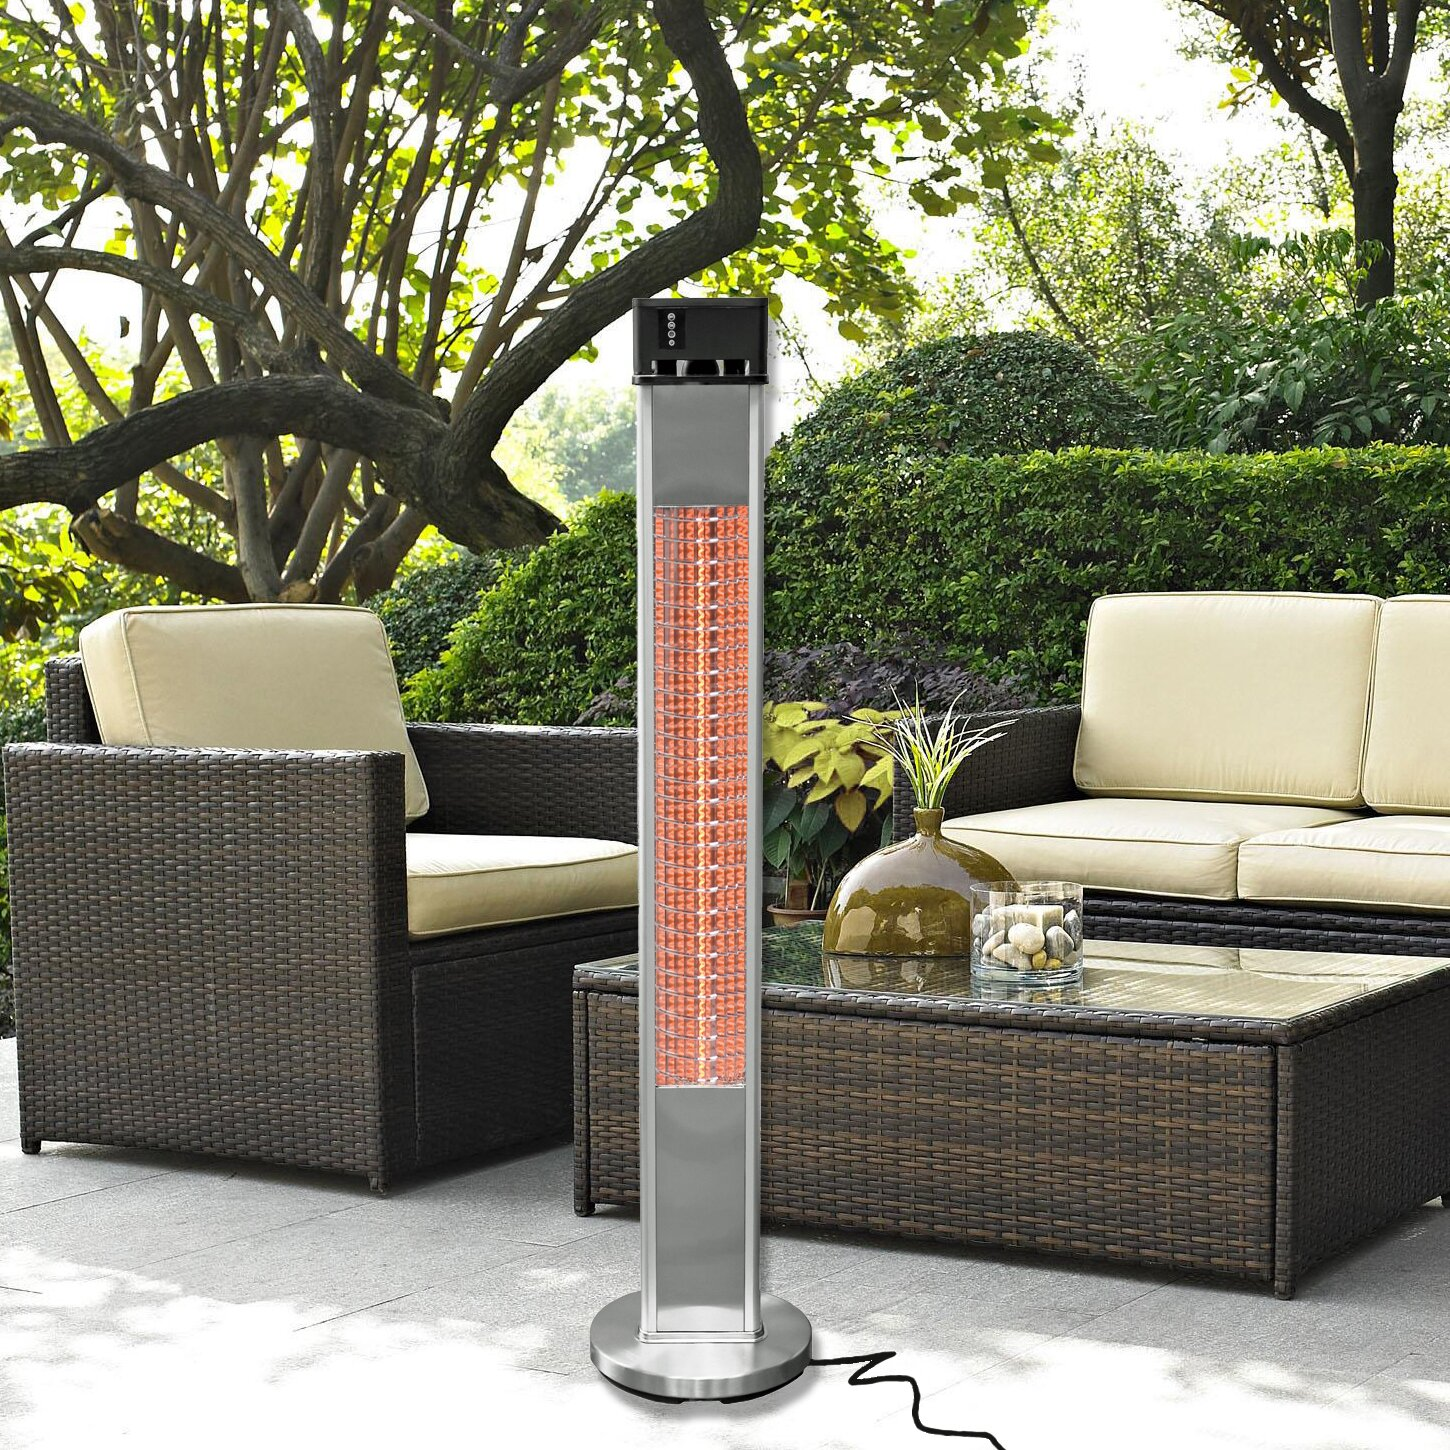 Portable Electric Infrared Tower Heater with Remote Control & Reviews